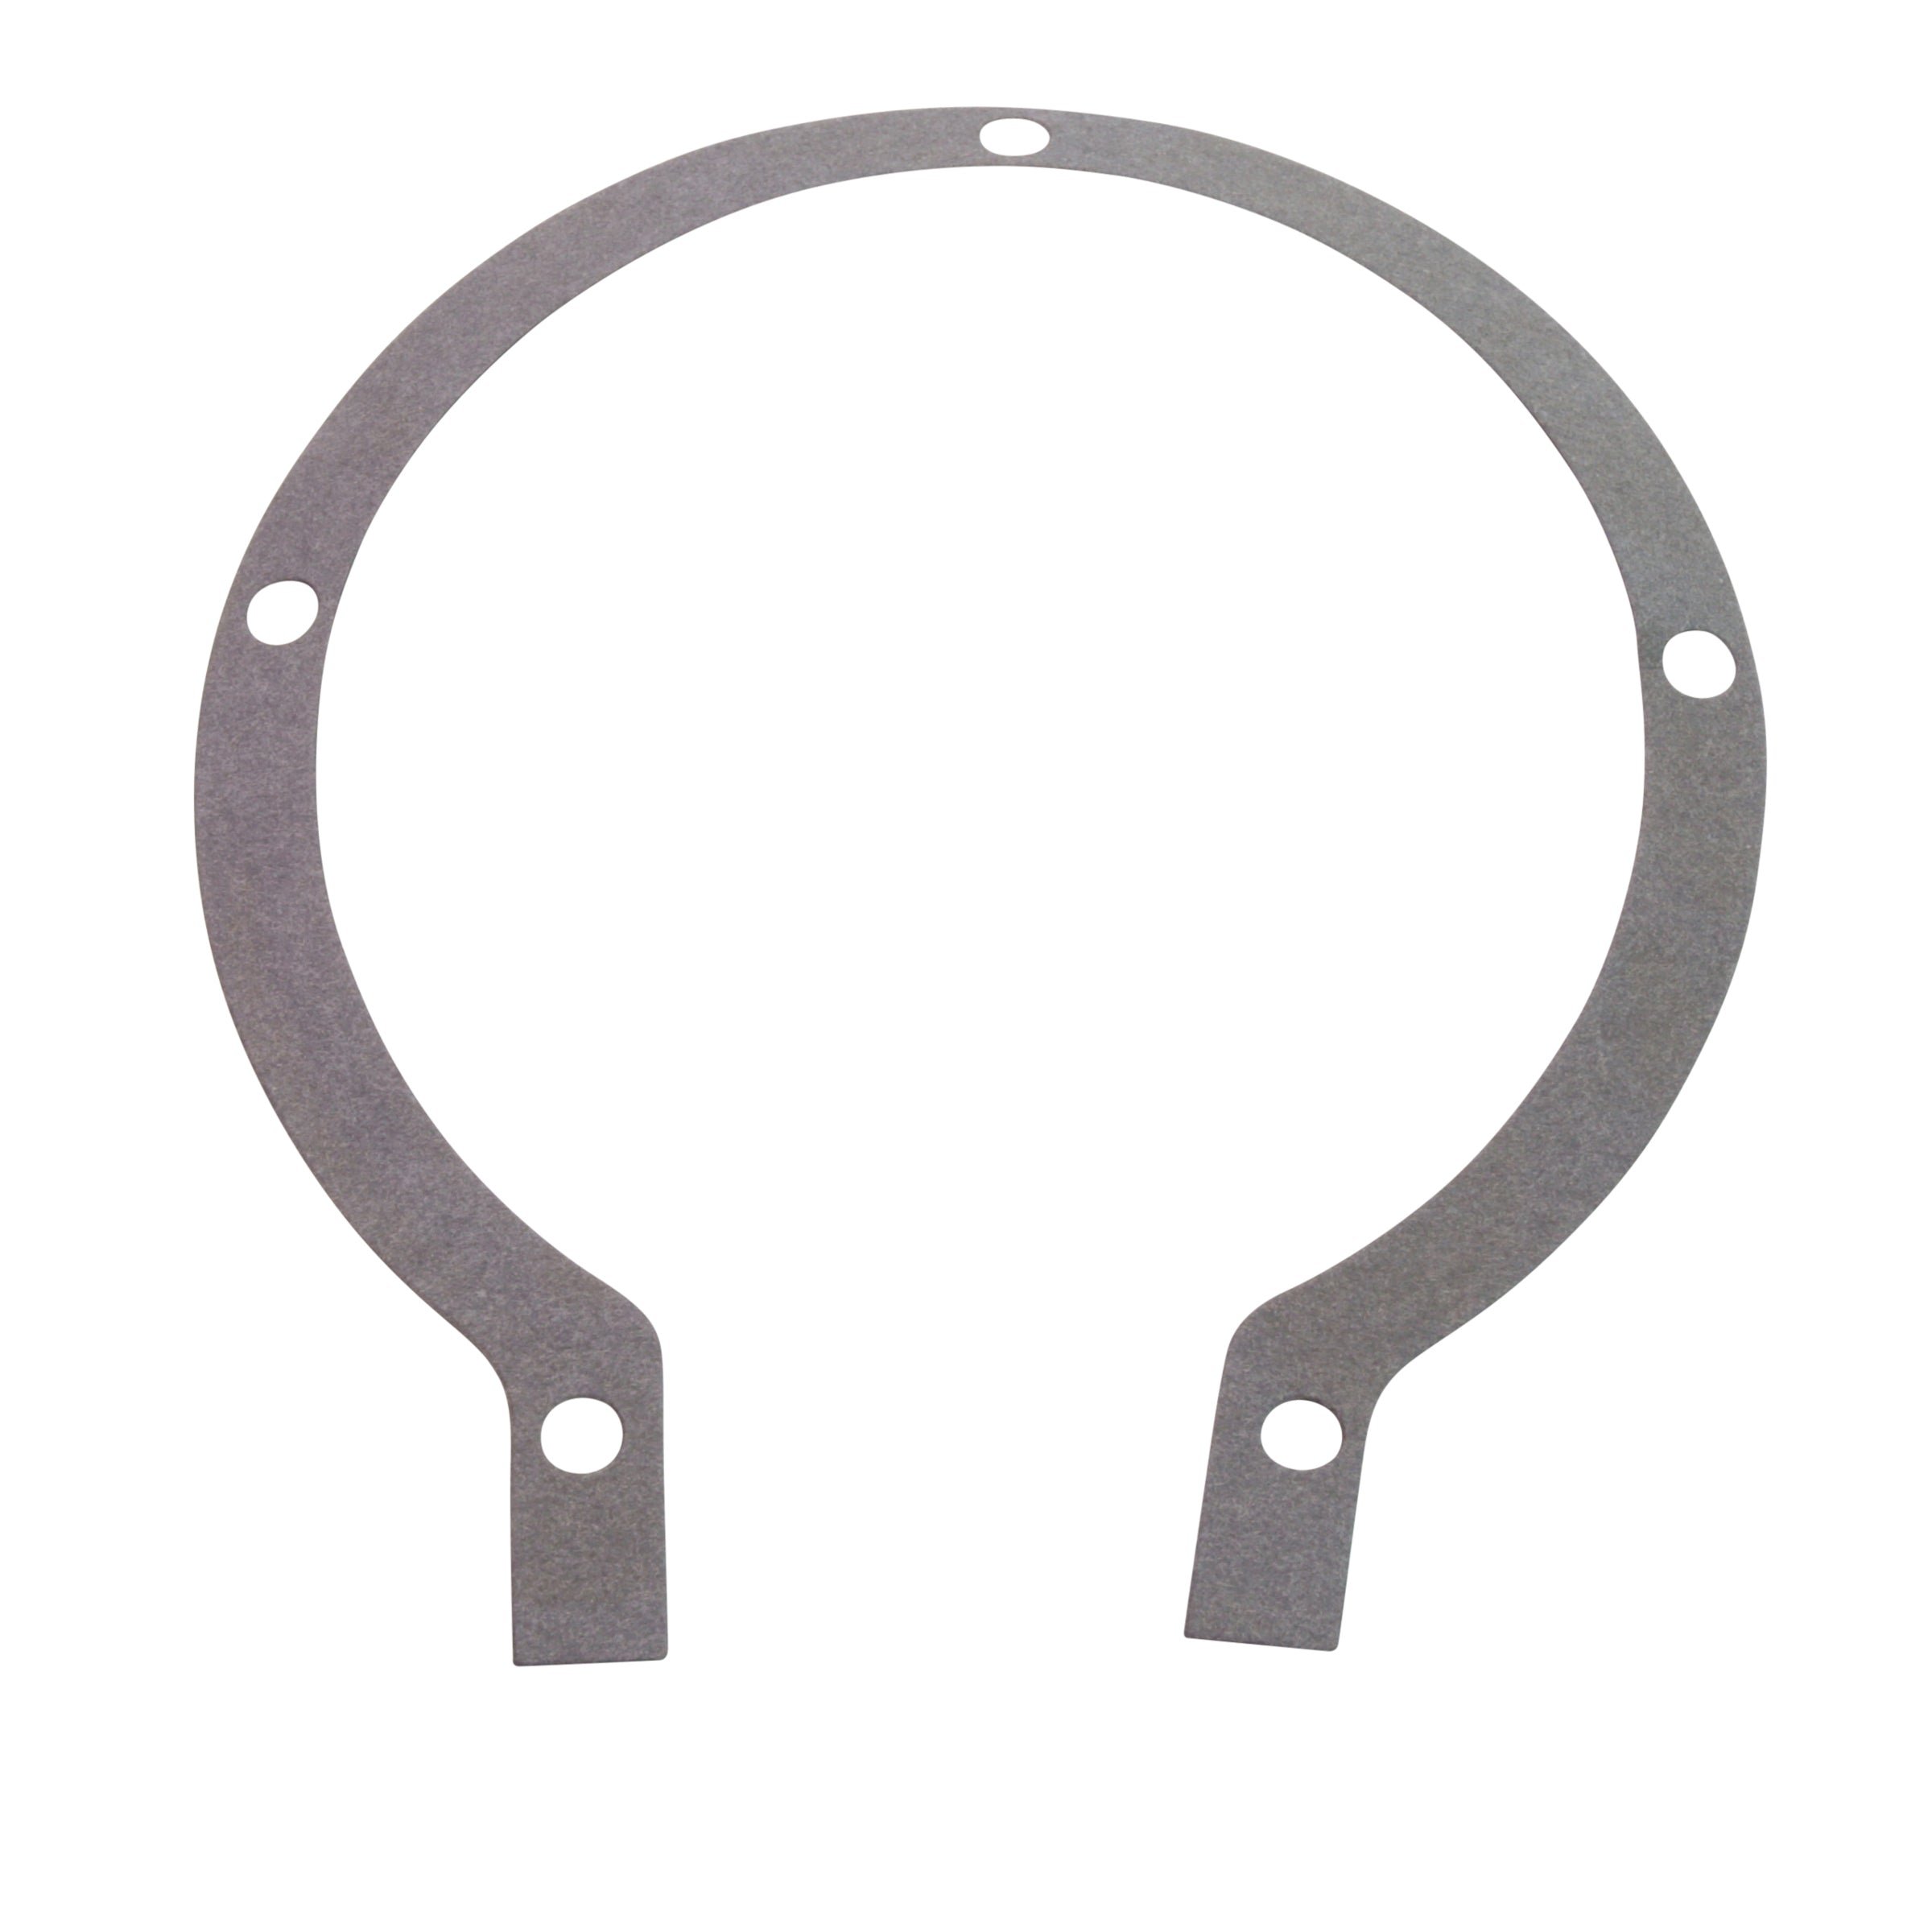 Timing Cover Gasket • 1932-48 Ford